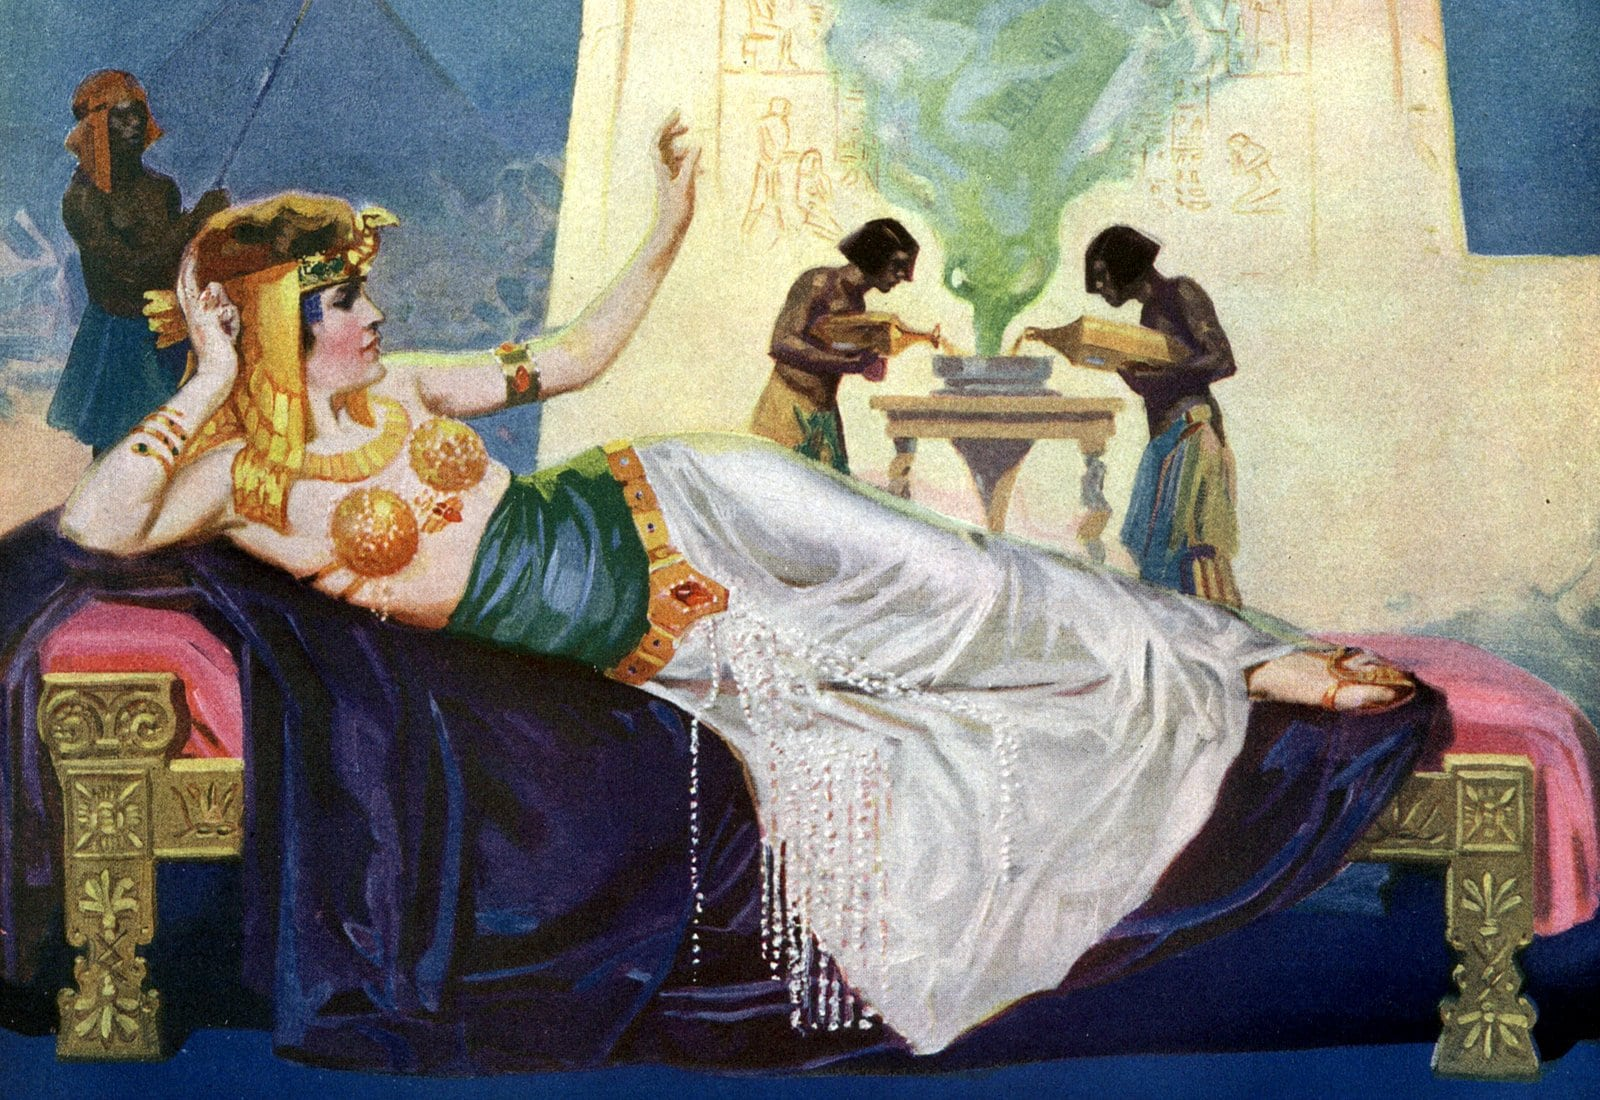 Cleopatra as imagined in the 1910s at Click Americana